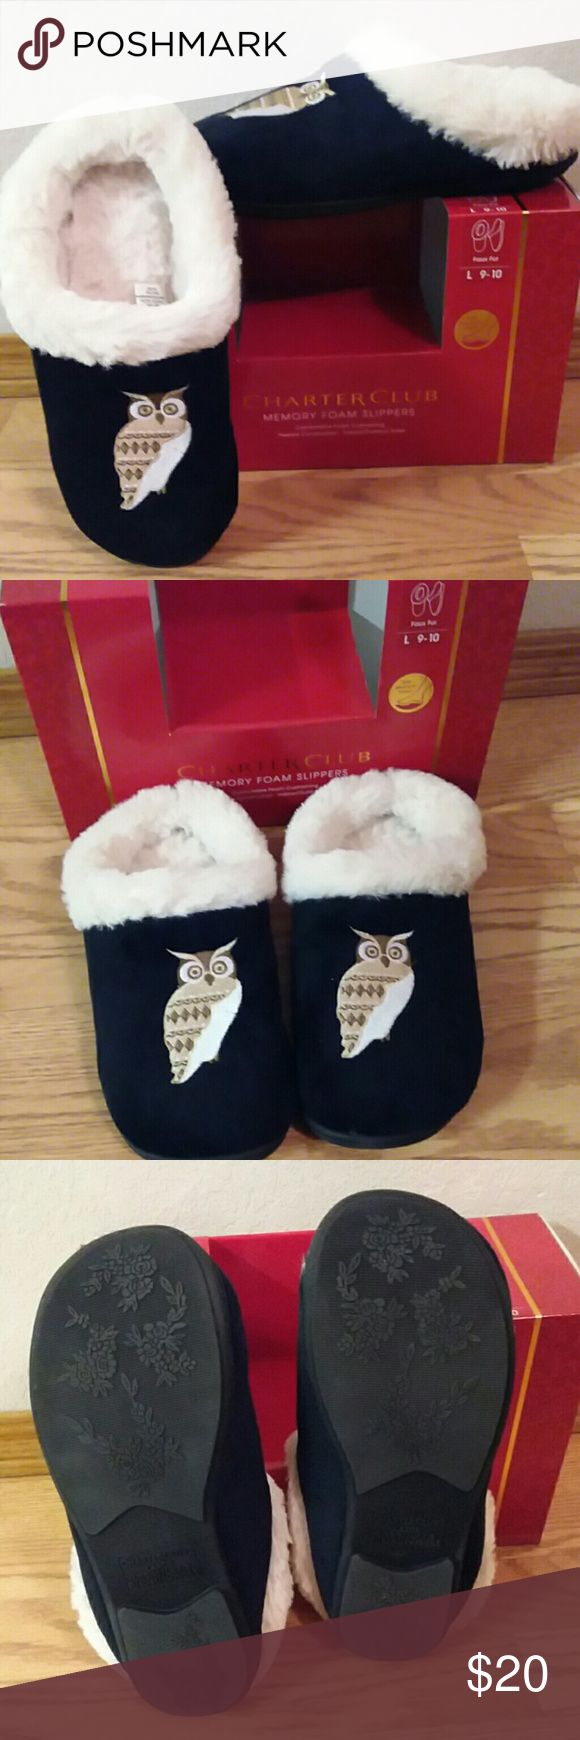 """Owl black and white memory foam slippers Charter club memory foam slippers.  Black and white with owl. Faux fur. Comfortable foam cushioning,  flexible construction,  indoor/ outdoor soles.  Ultimate comfort. slip resistant outsole for better traction.  High density foam makes every step soft and comfortable.  From toe to heal they are 11"""" long.  NEW Charter Club Shoes Slippers"""